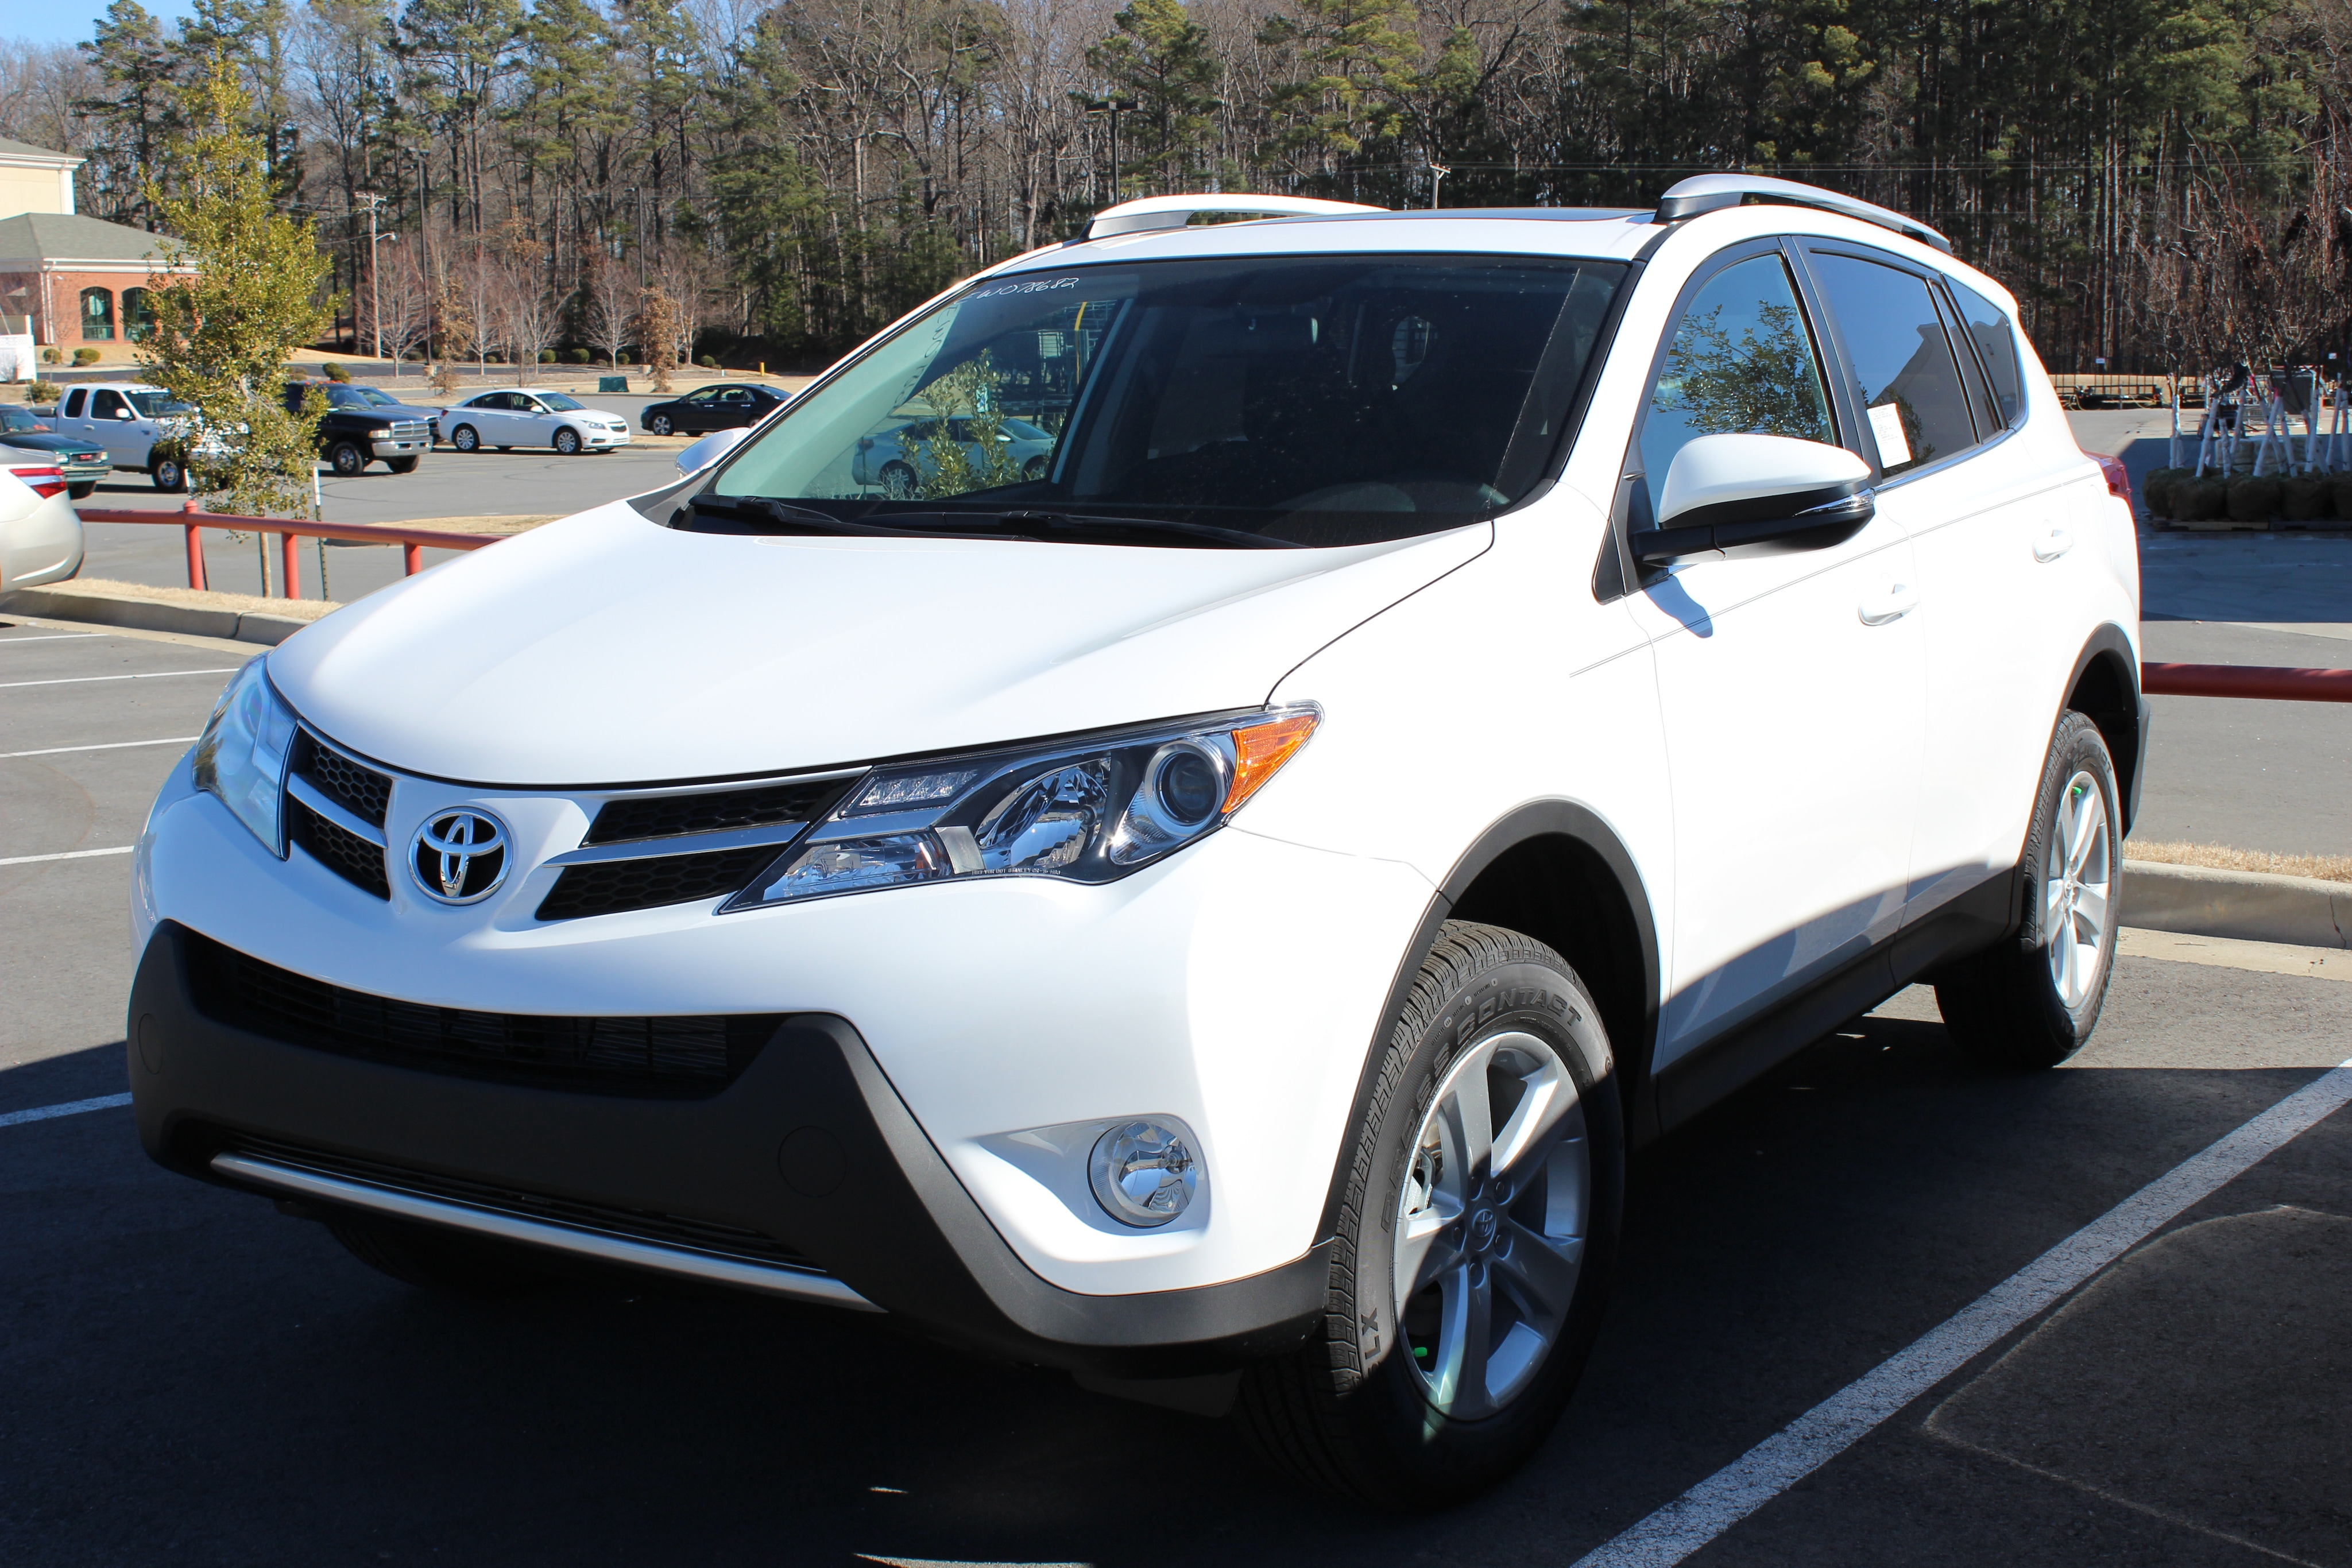 We Have The 2014 Toyota Rav4 You Have Been Looking For At Steve Landers  Toyota In Little Rock, AR. The Toyota Rav4 Was Redesigned For 2013 With All  Sorts Of ...